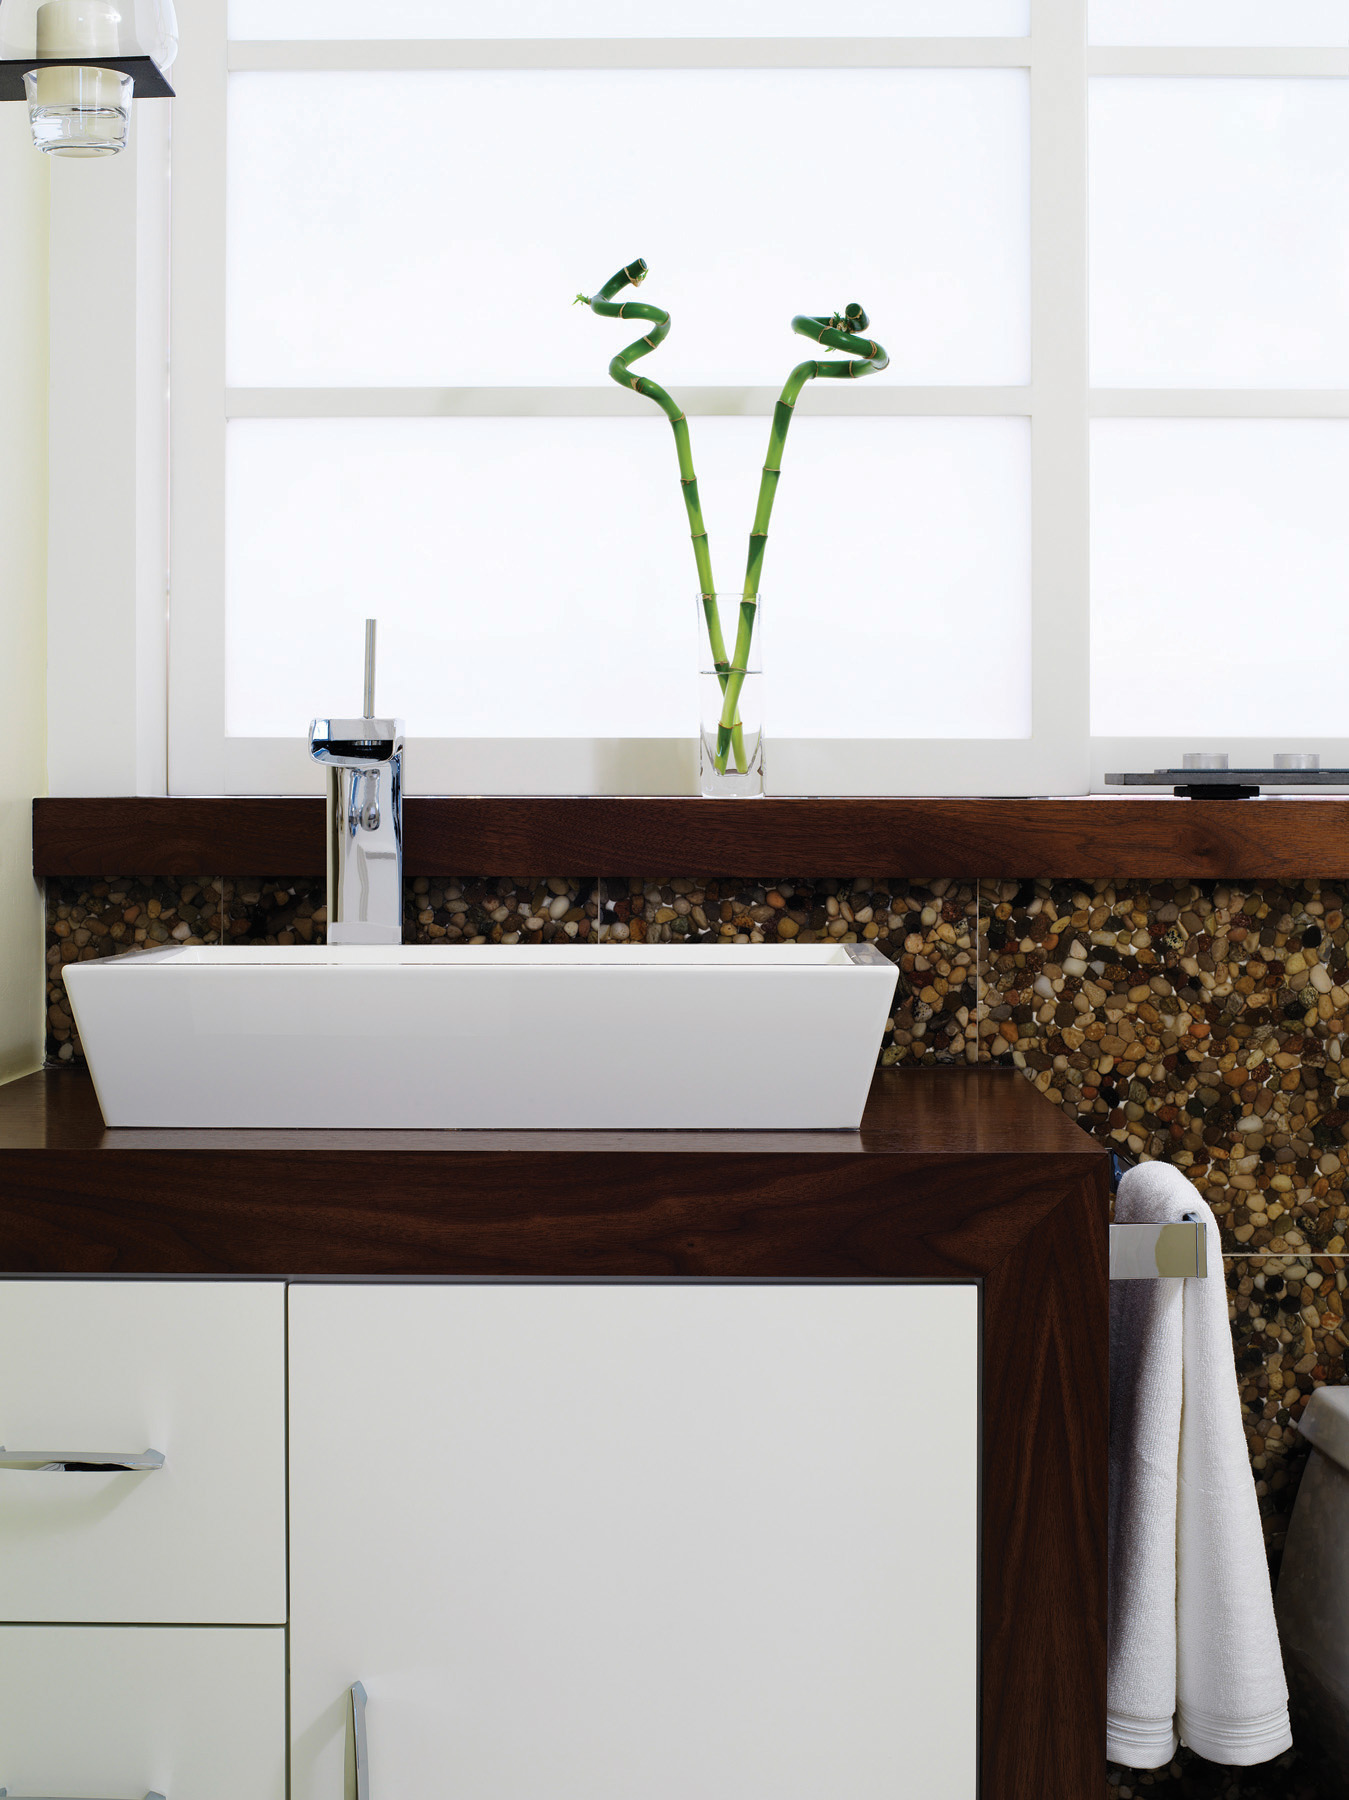 A One-Day Bathroom Makeover Even You Can Do | Home Trends ...